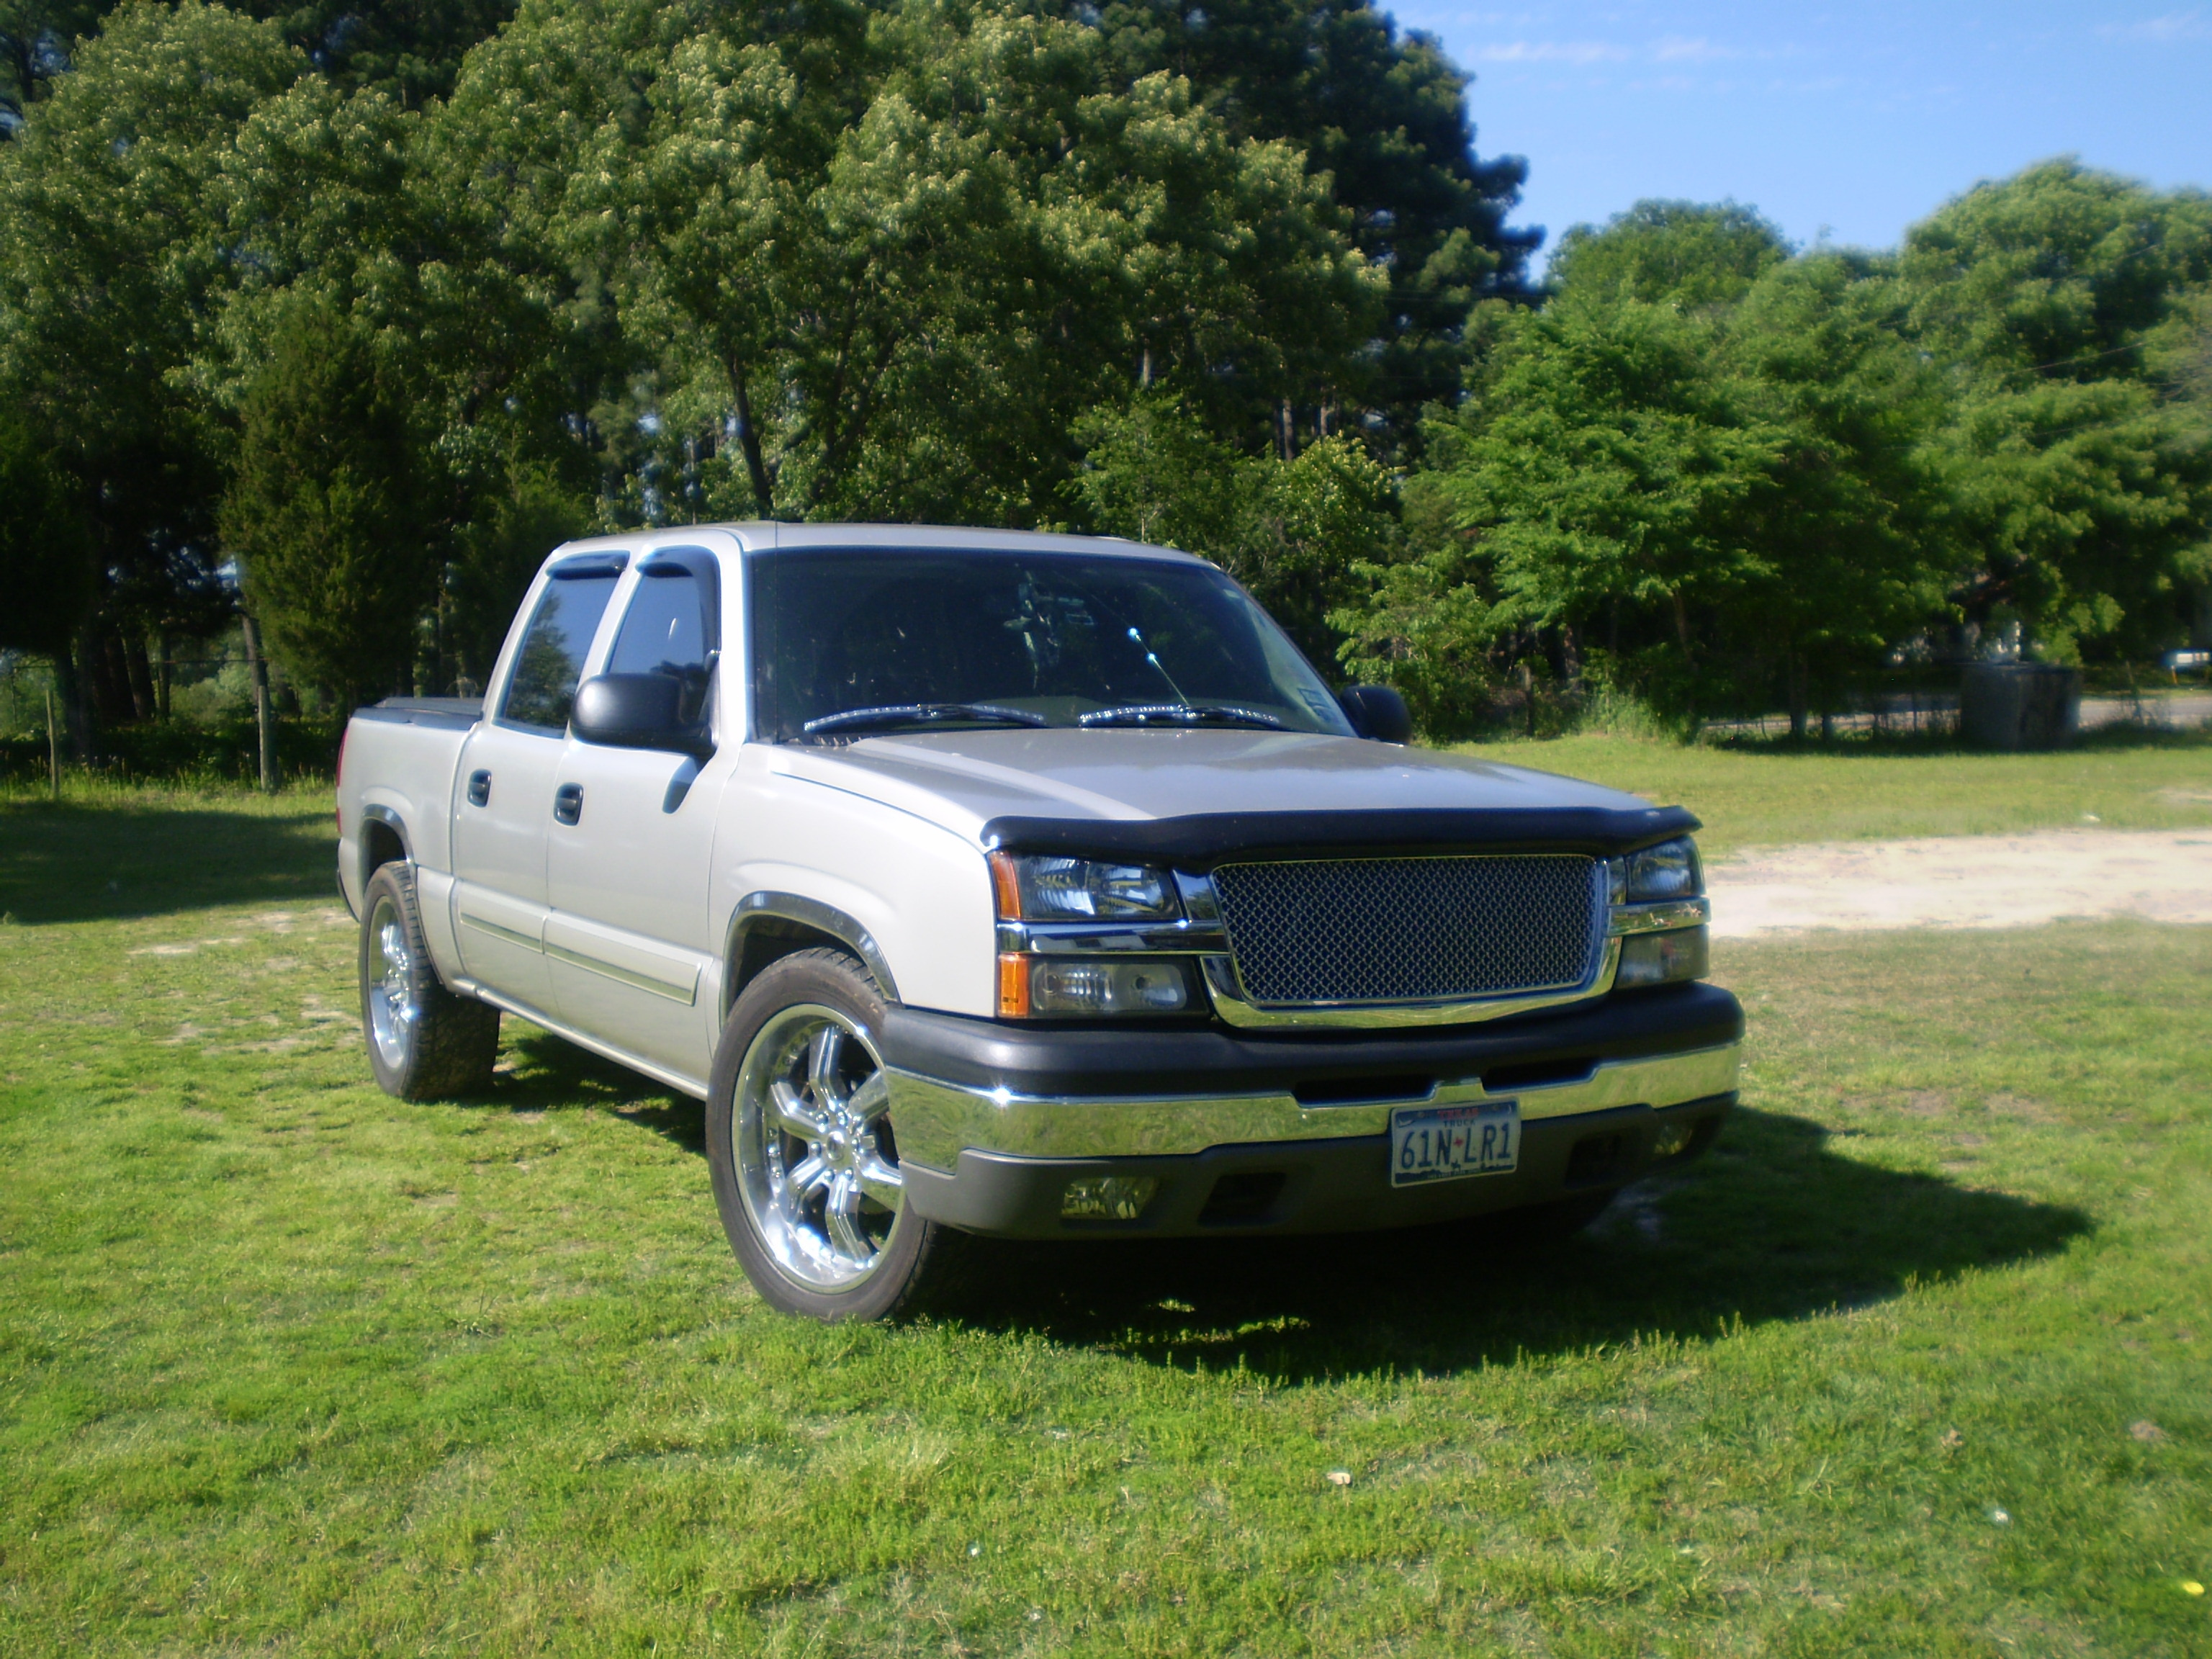 palacios chevy 2004 chevrolet silverado 1500 crew cab specs photos modification info at cardomain. Black Bedroom Furniture Sets. Home Design Ideas